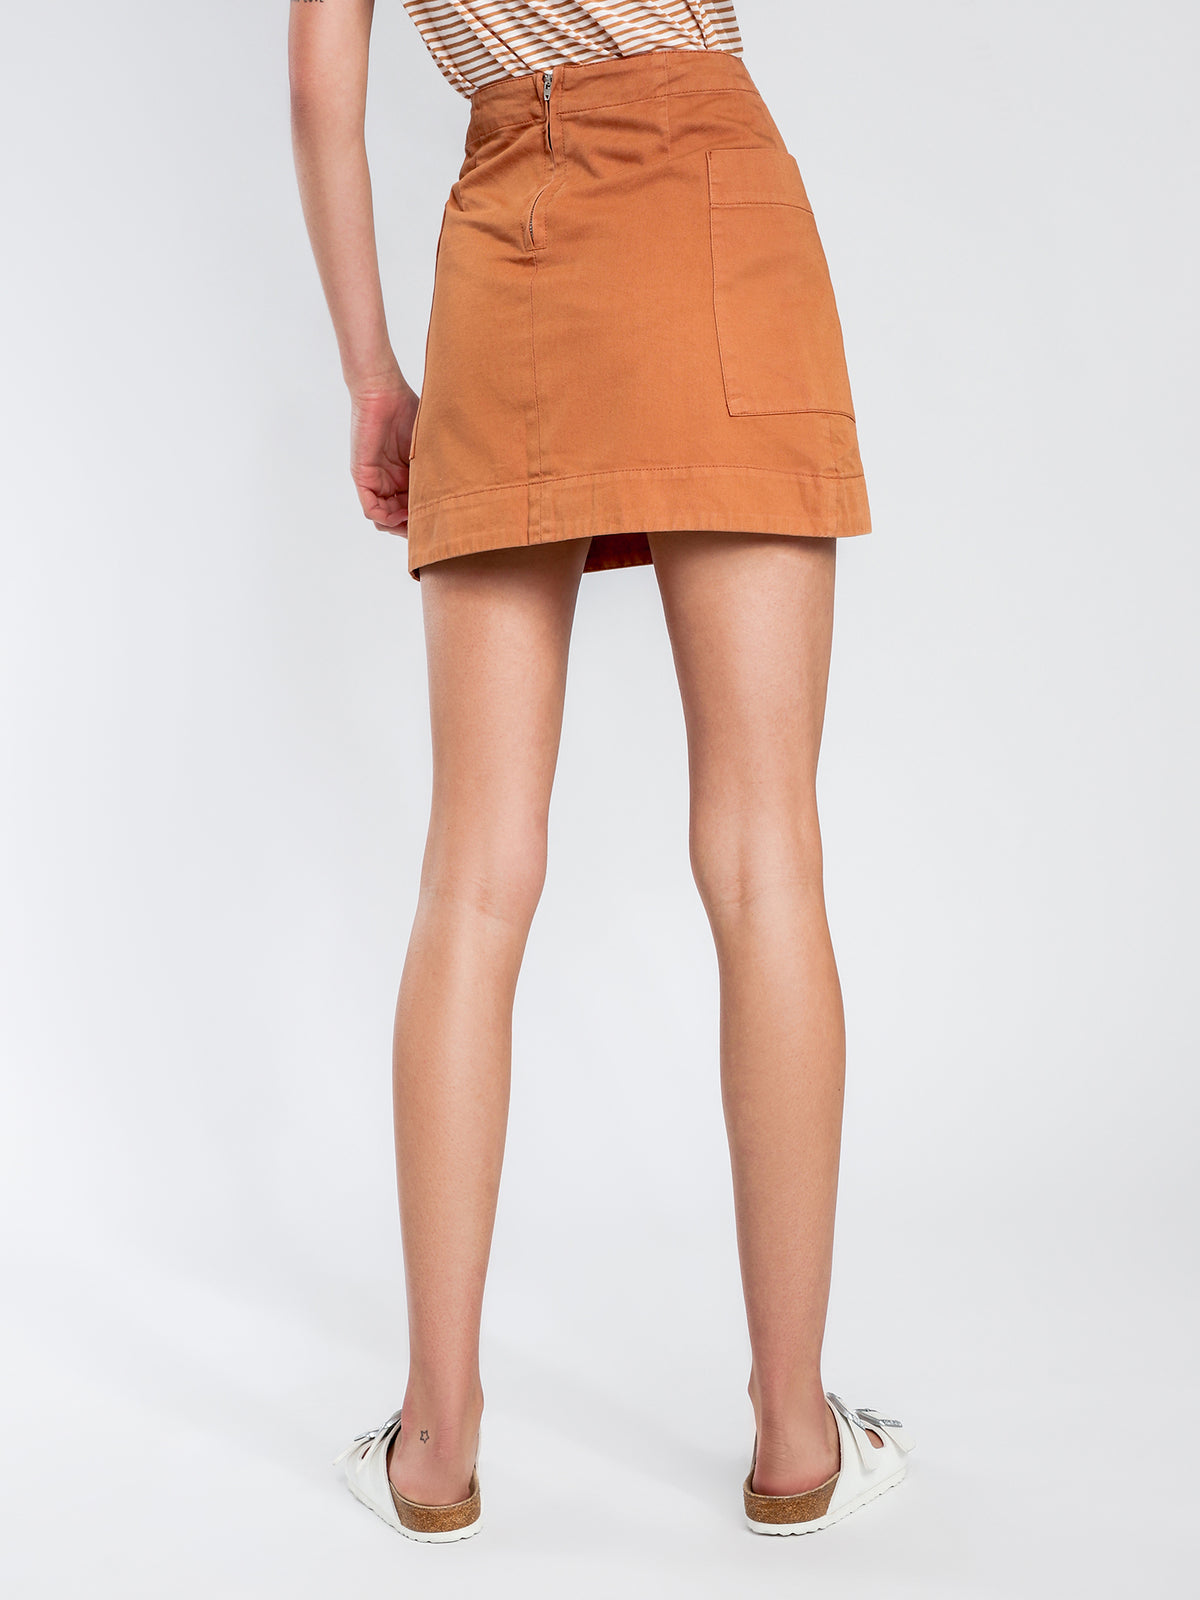 Larsson Mini Skirt in Cinnamon